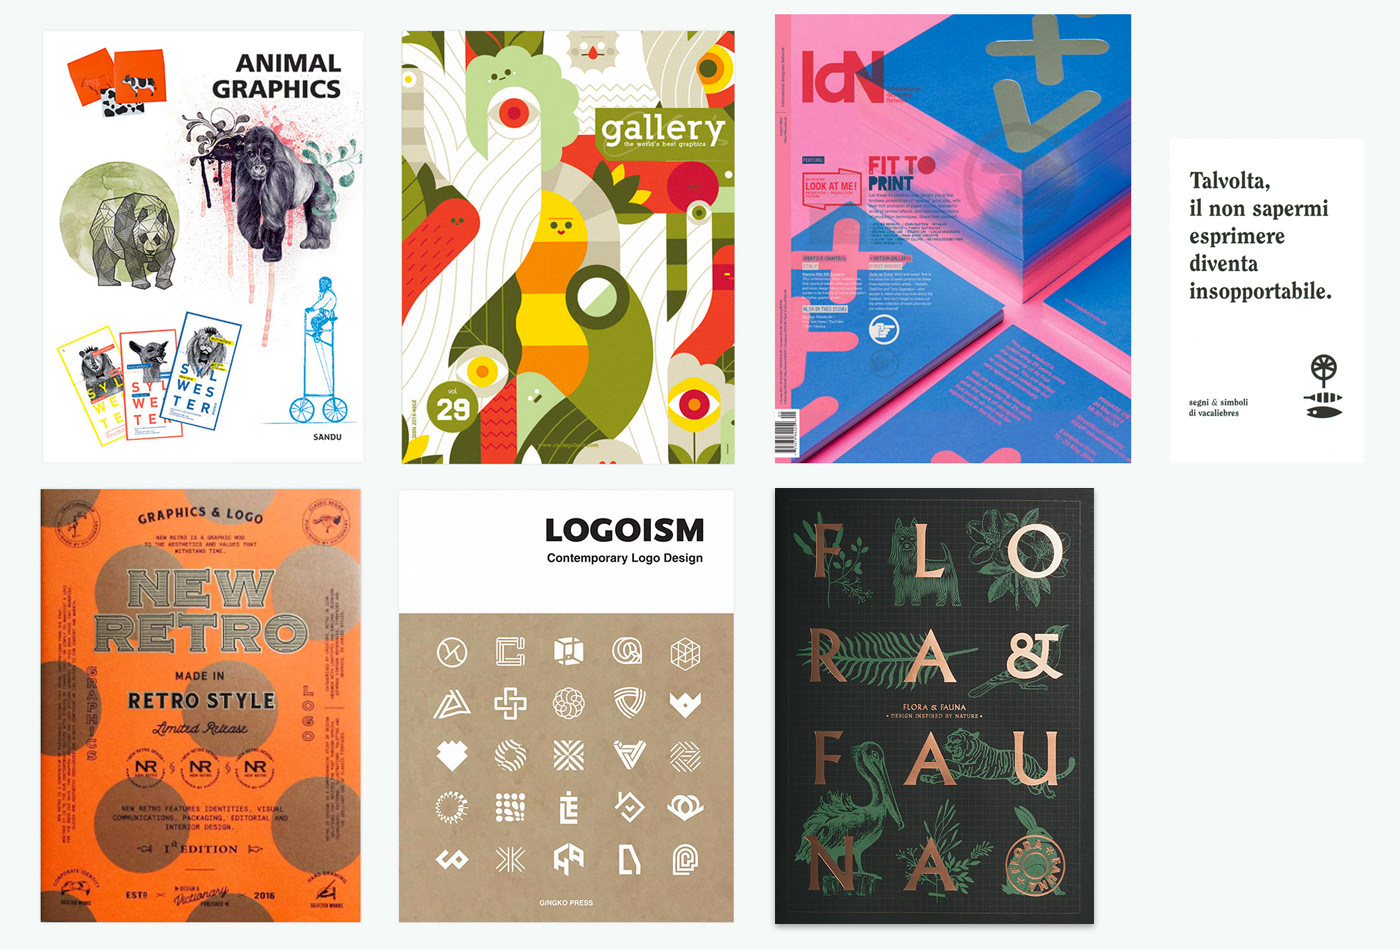 vacaliebres-book-animal-graphics-sandu-sandupublishing-victionary-idn-magazine-newretro-logoism